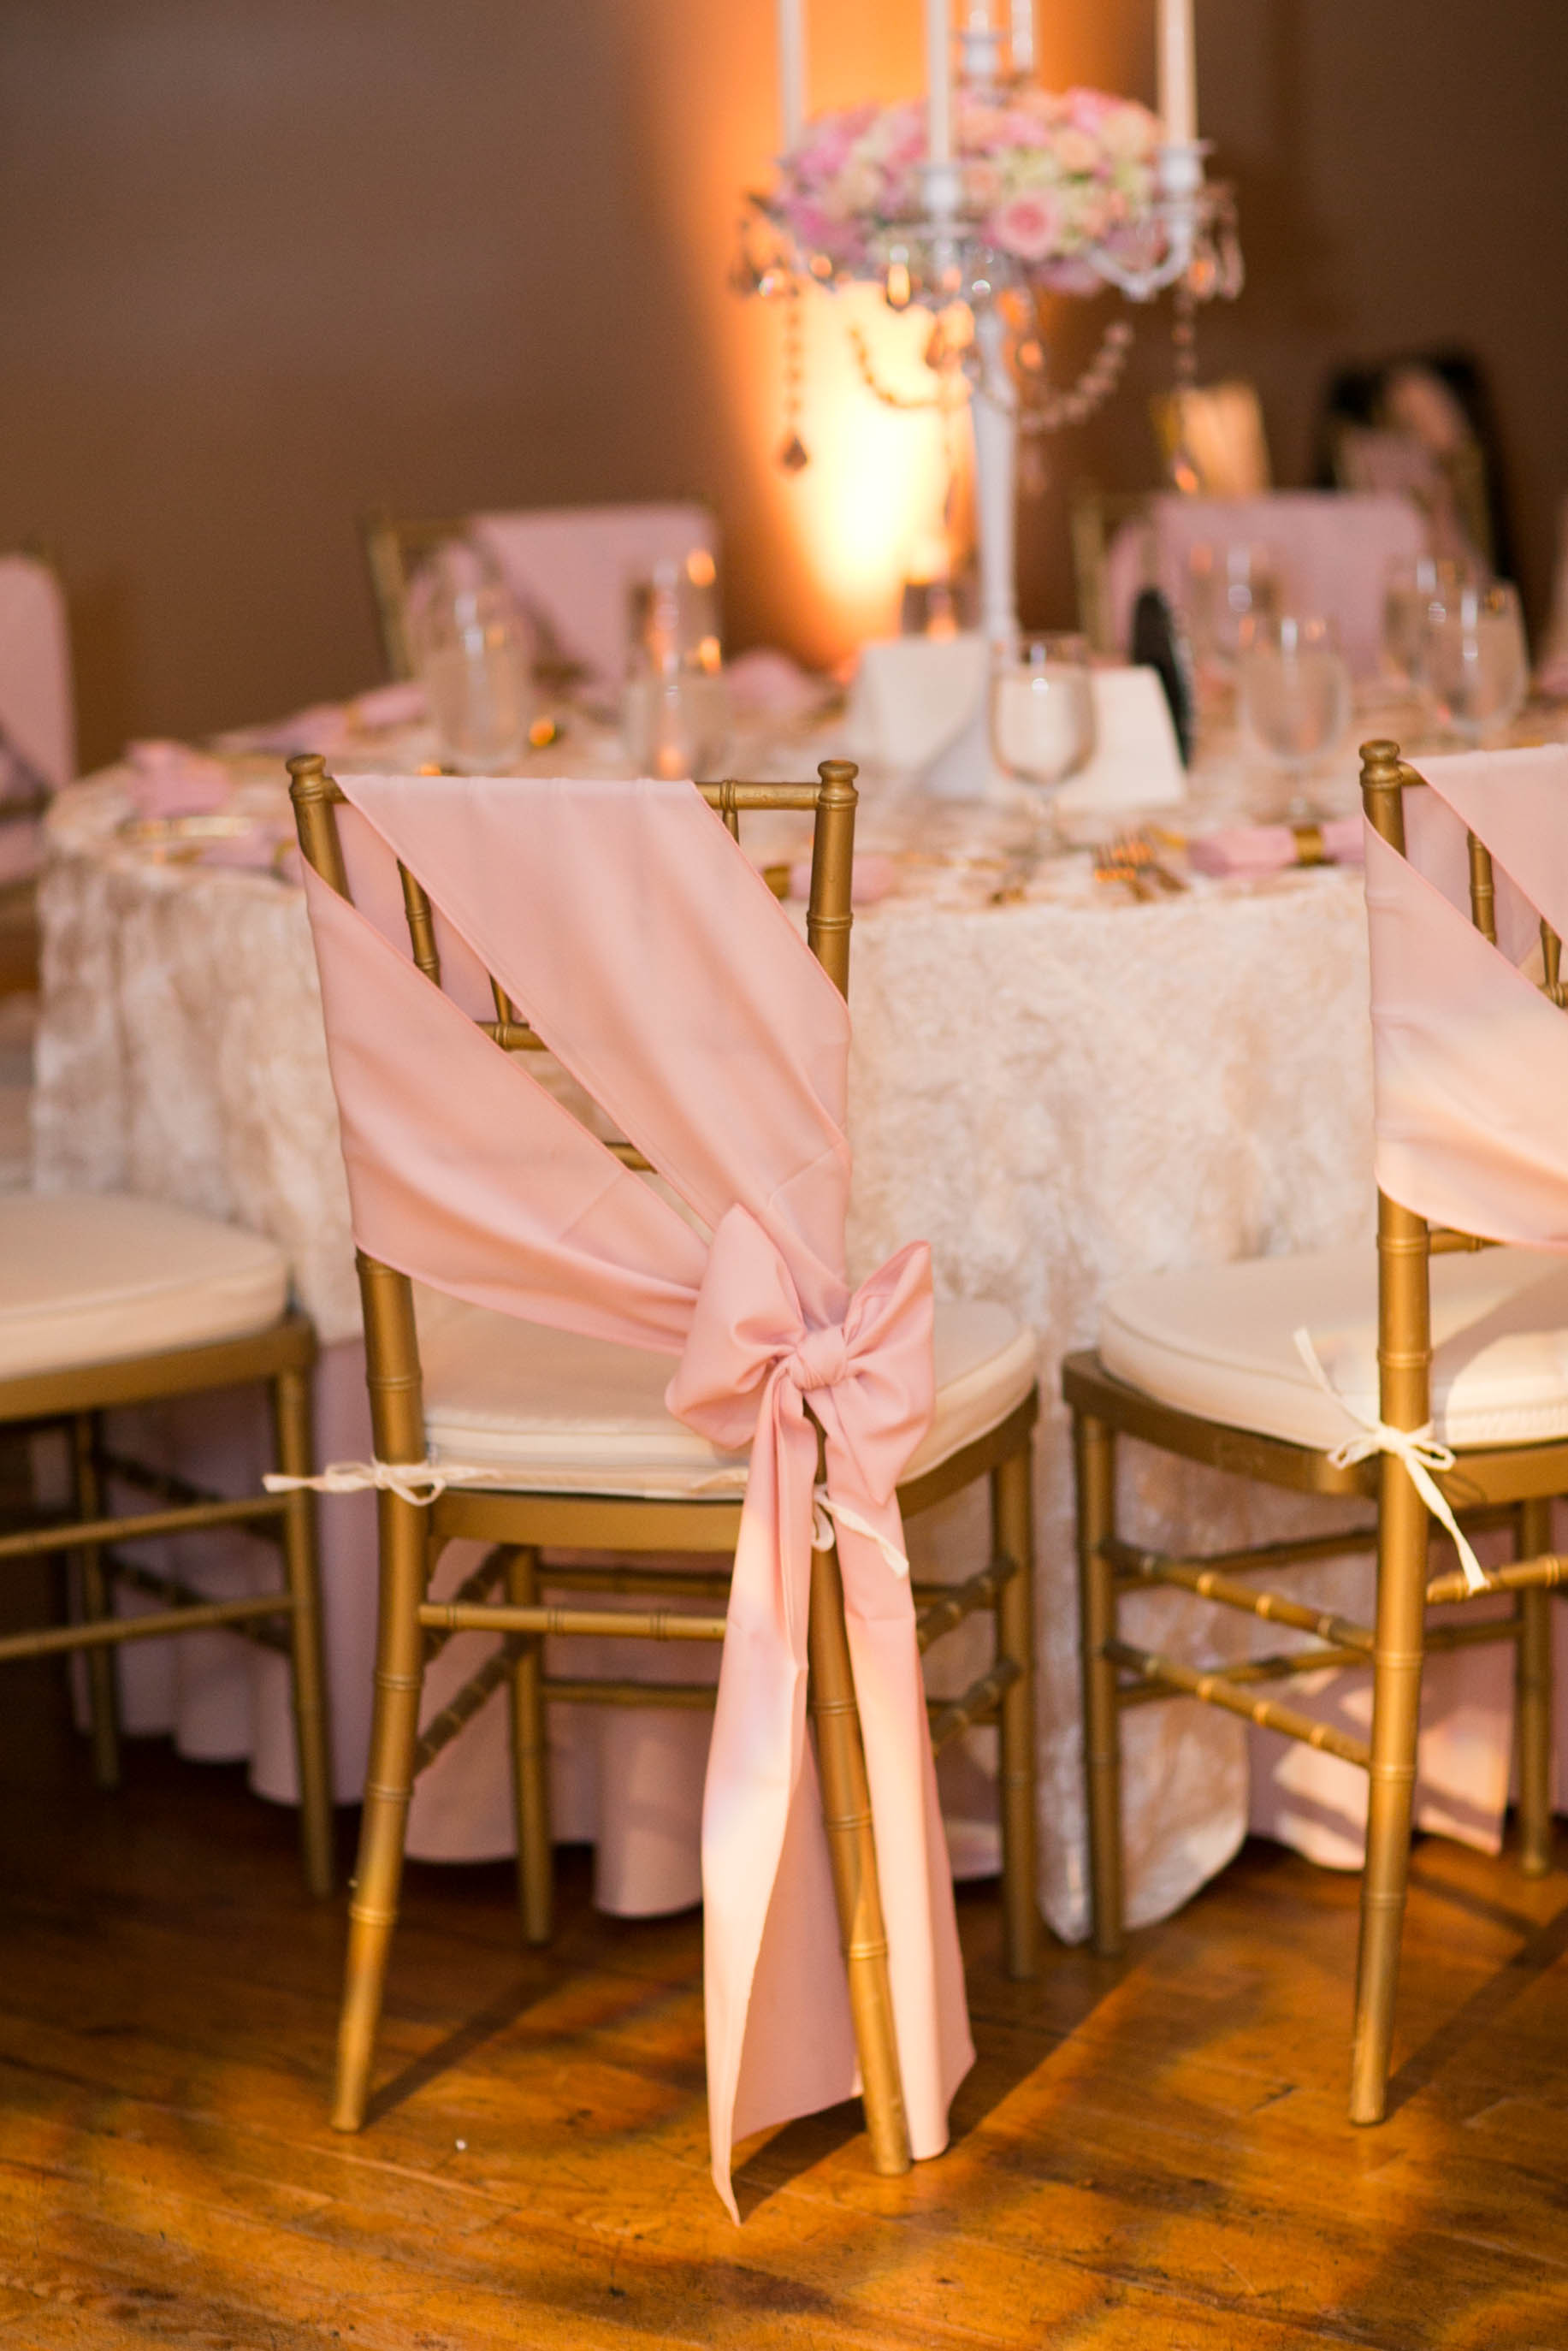 How To Make Chair Sashes 20 Creative Diy Wedding Chair Ideas With Satin Sash